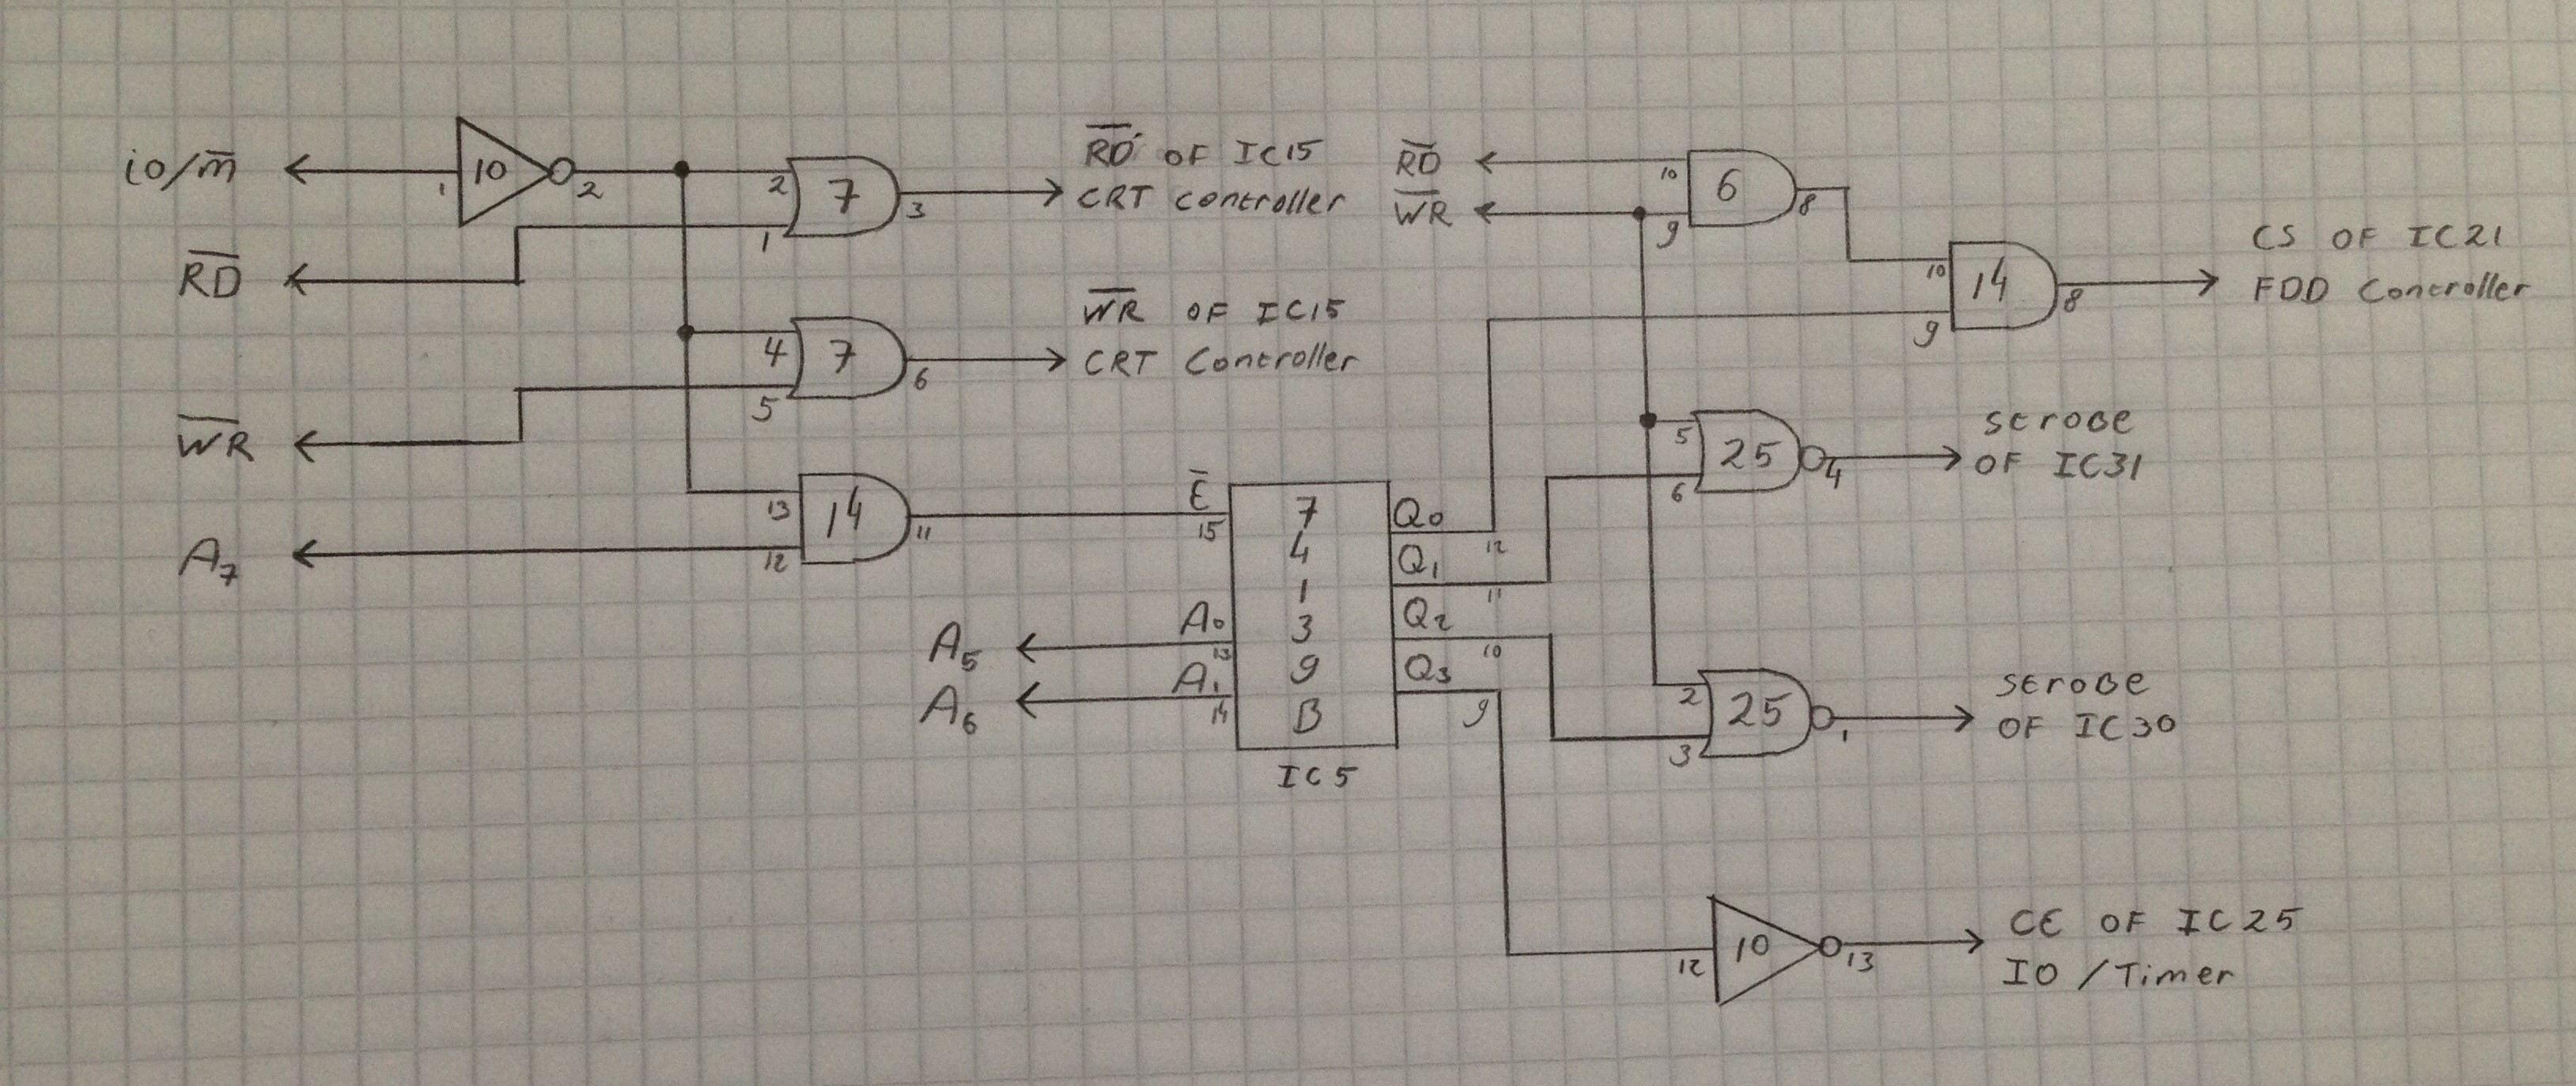 Project Anatomy Of A Philips Videowriter Vdp Wiring Diagram Lets Start Looking At The Left Part Schematic Before 74139 This Is Where Rd And Wr Signals For Video Controller Are Generated